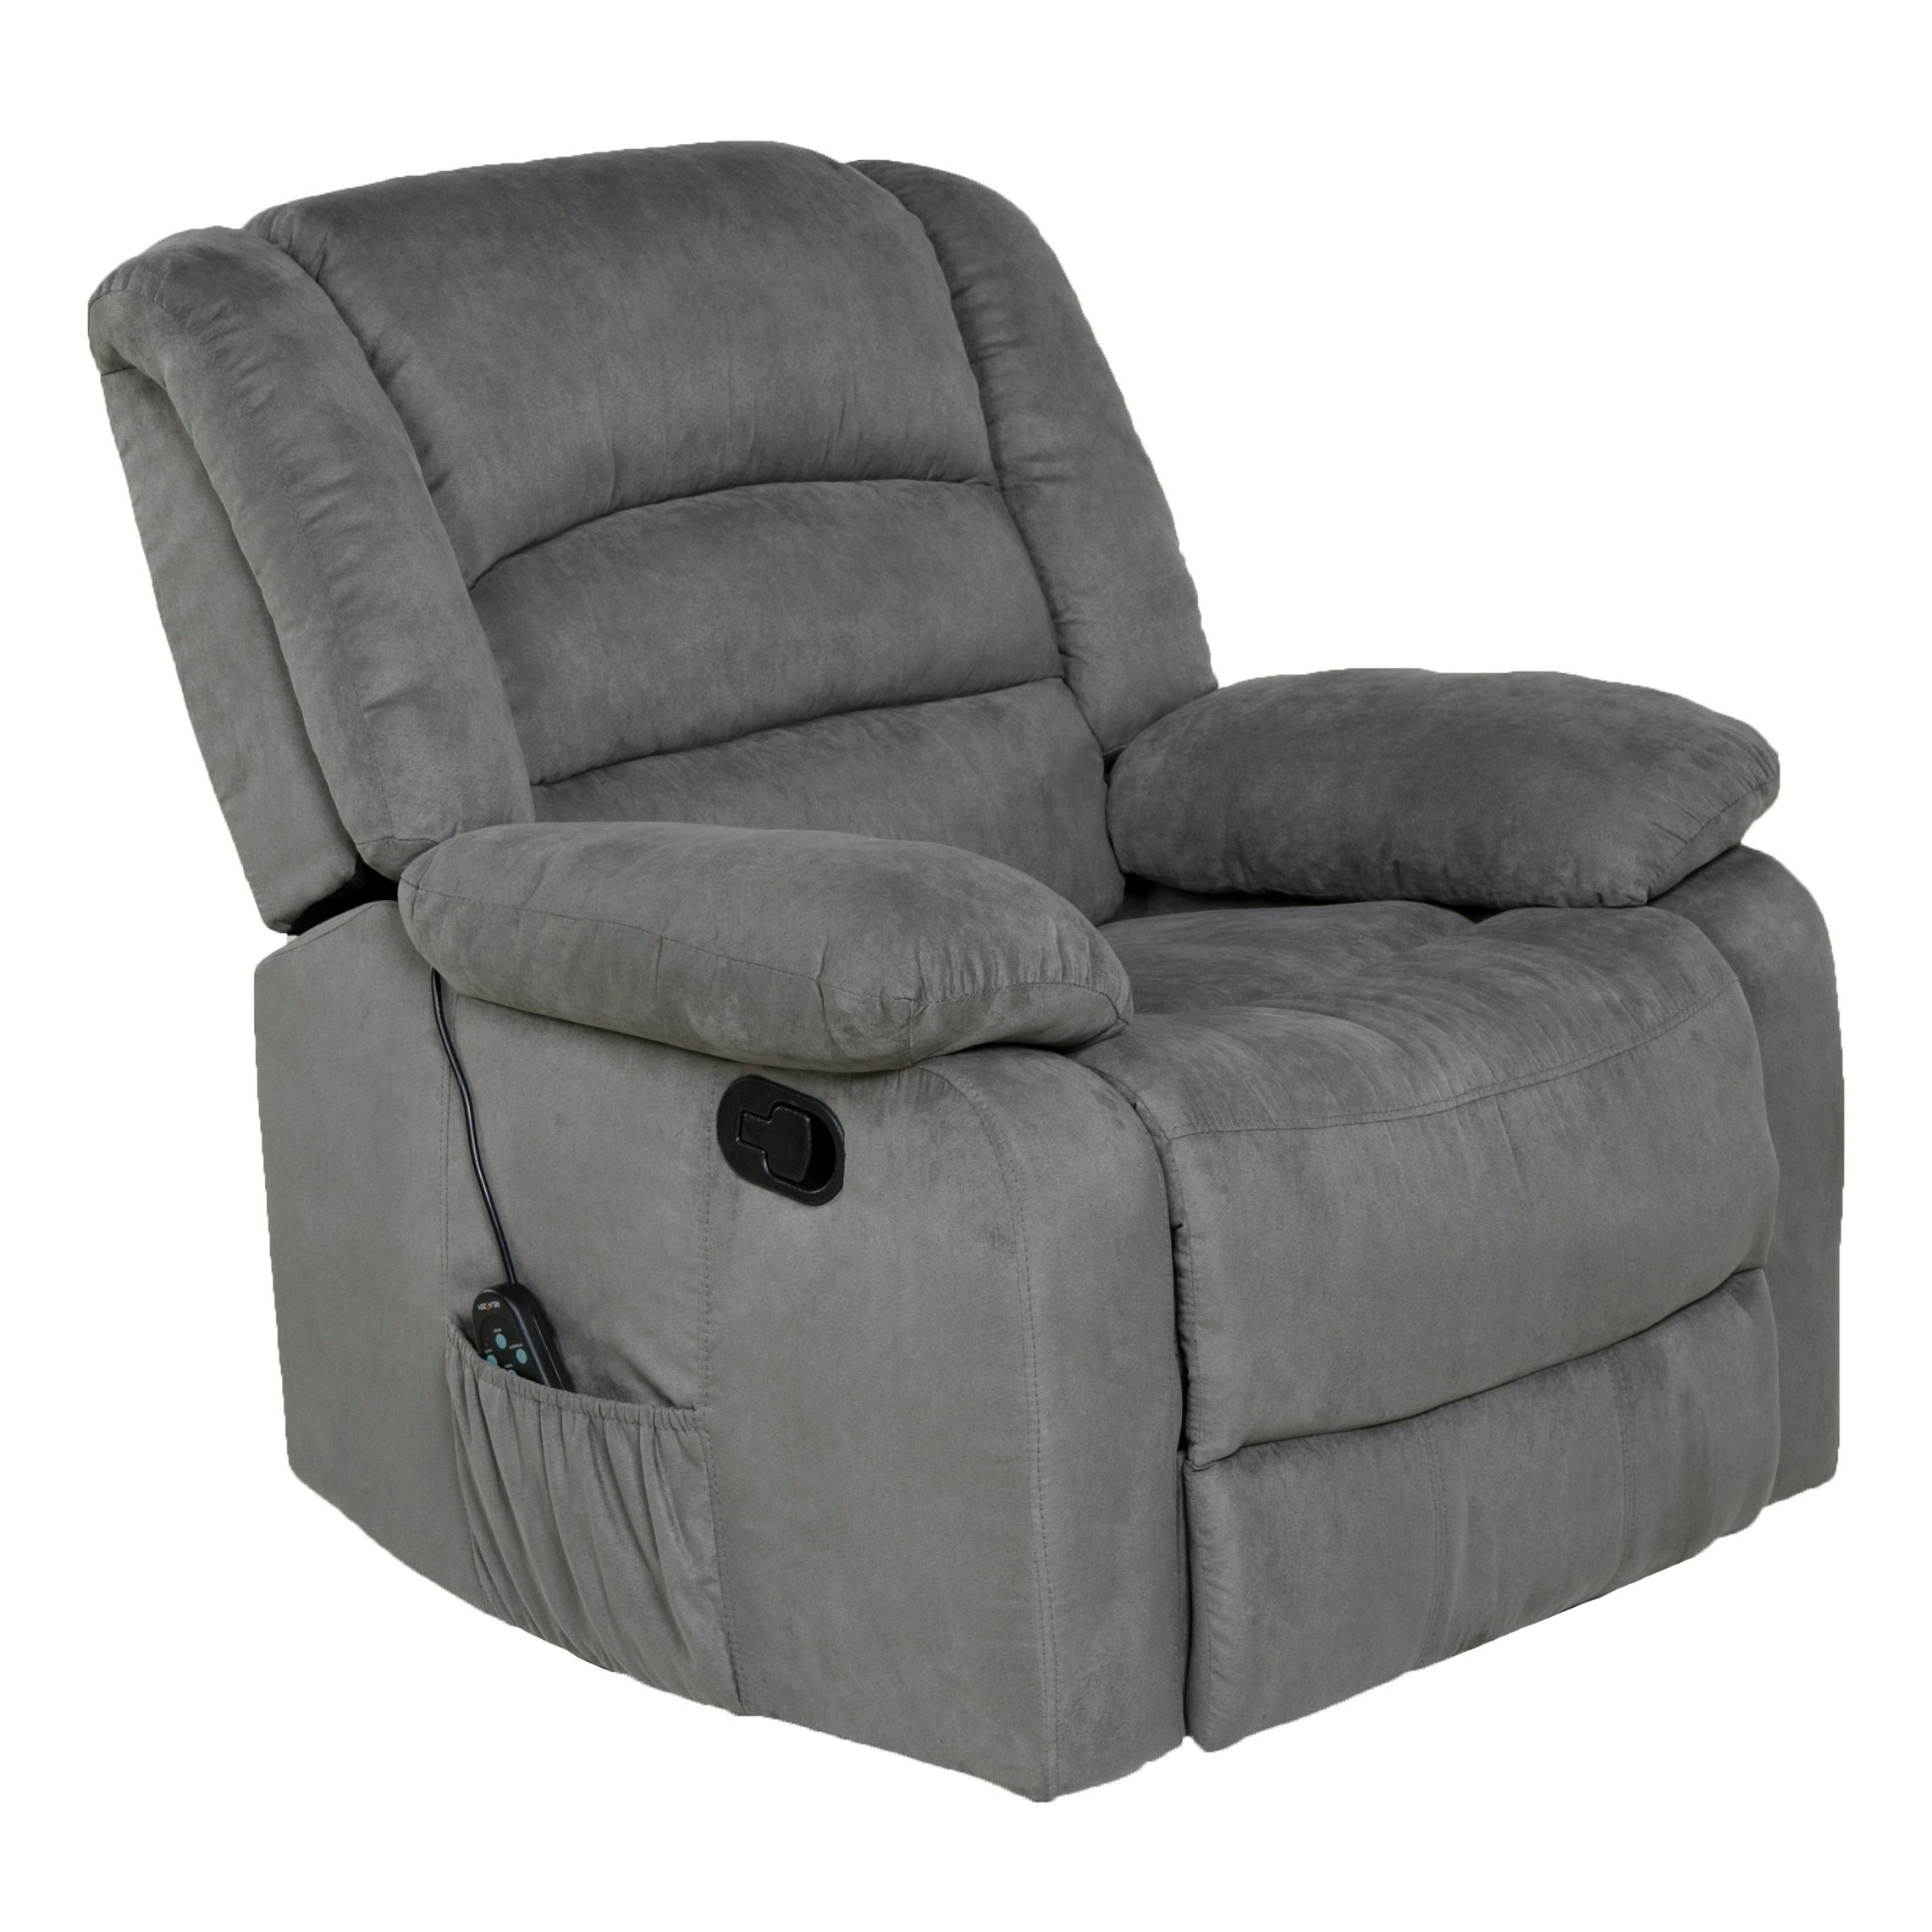 Shop Copper Grove Tynwald Rocker Recliner With Heat, Massage, And Regarding Gannon Linen Power Swivel Recliners (View 15 of 25)